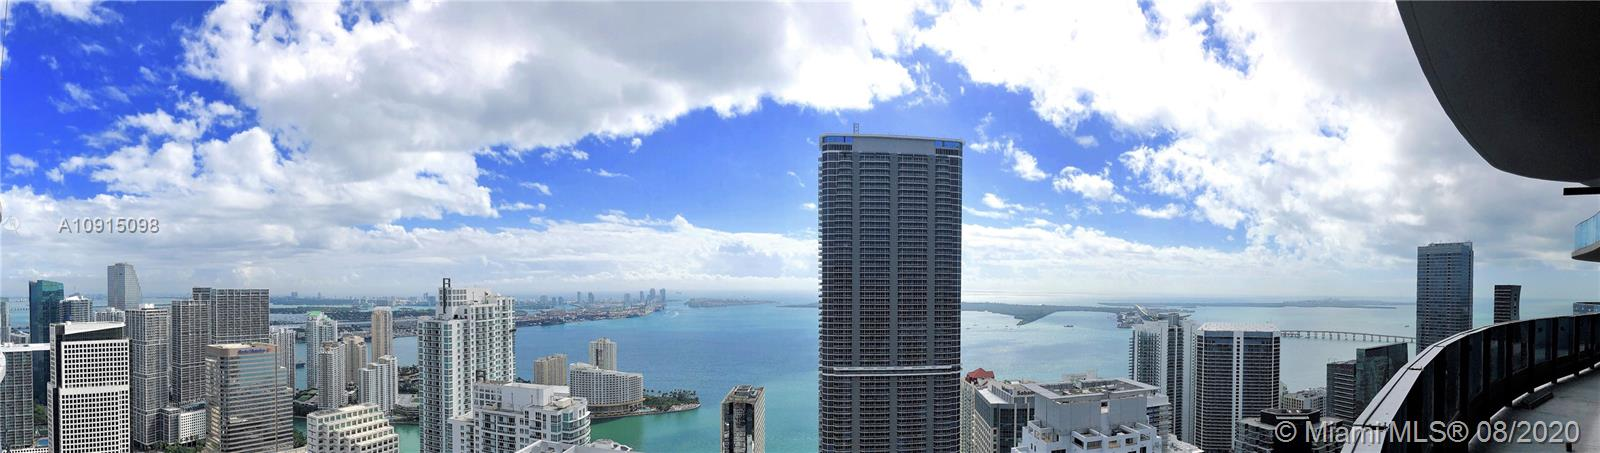 Colombo's CMC Group presents their newest luxury condo development Brickell Flatiron; a 64-story glass tower featuring the highest quality Italian finishes, unparalleled services, resort style amenities and expansive residences. Located in the heart of Brickell, residents are ideally situated within walking distance of Mary Brickell Village and Brickell City Centre—offering unparalleled access to a wide array of world-class restaurants , shops, arts & culture.